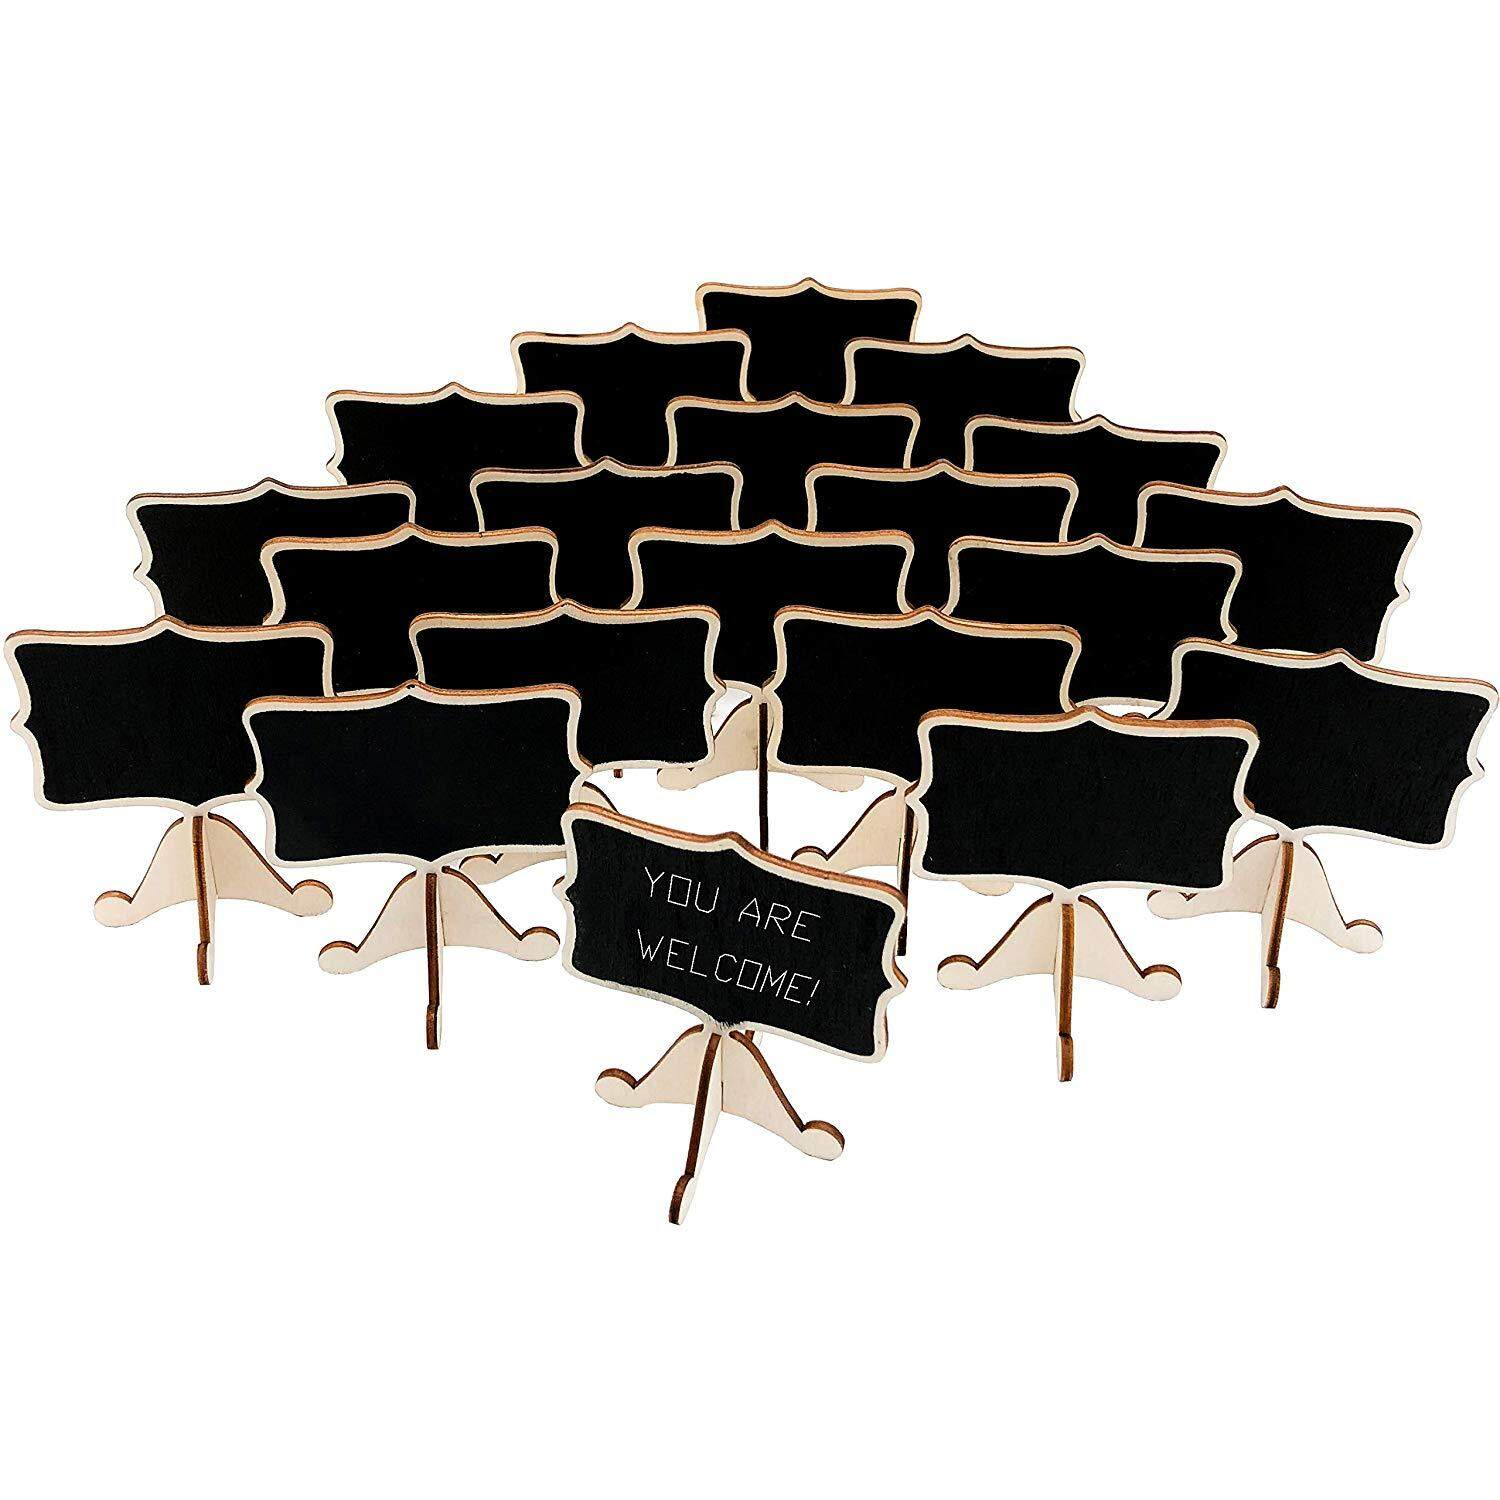 20 Pcs Wood Mini Chalkboard Signs With Support Easels, Place Cards,small Rectangle Chalkboards Blackboards For Weddings, Birthday Parties, Message Board Signs And Event Decorations By Starnet Store.